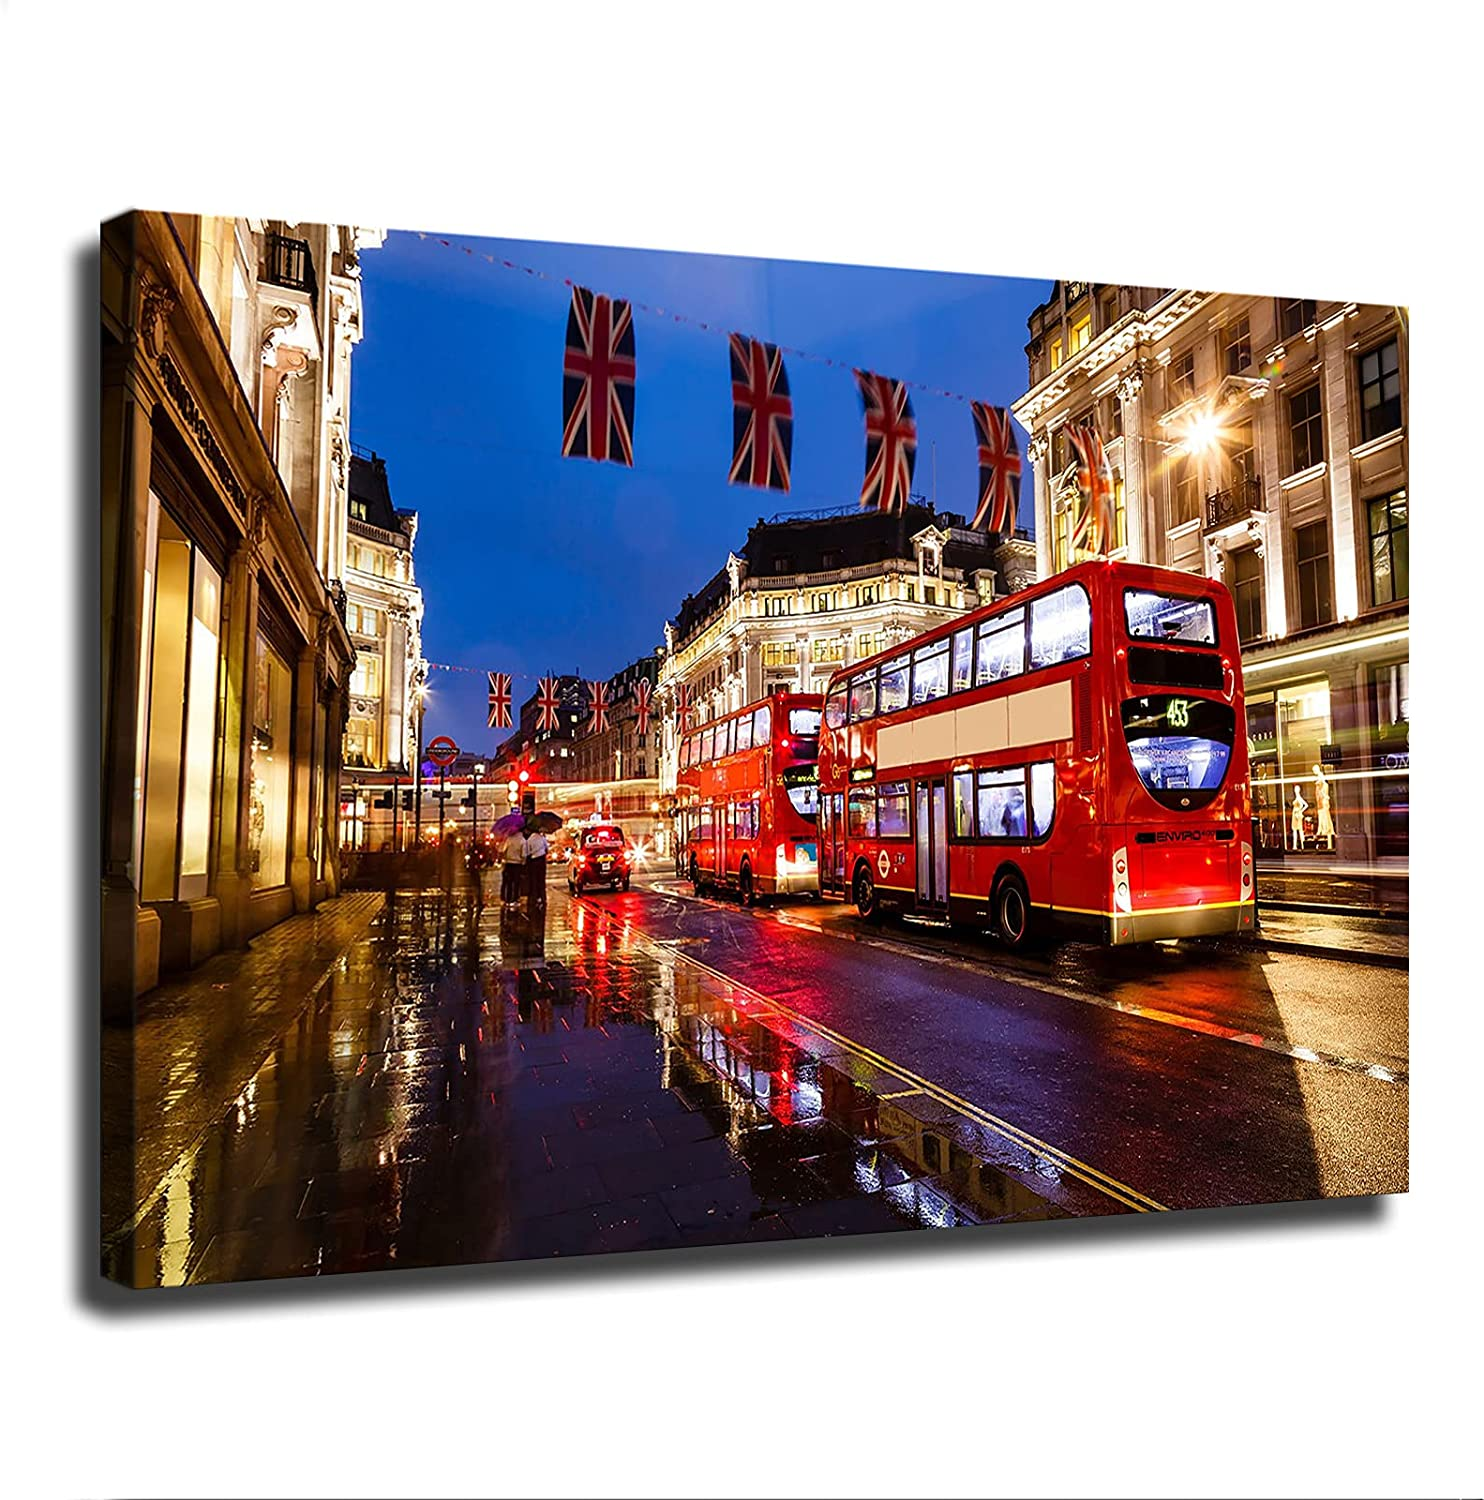 Street View of London Poster Picture Art Print Canvas Wall Art Home Living Room Bedroom Decor Mural (20×30inch-No Framed)